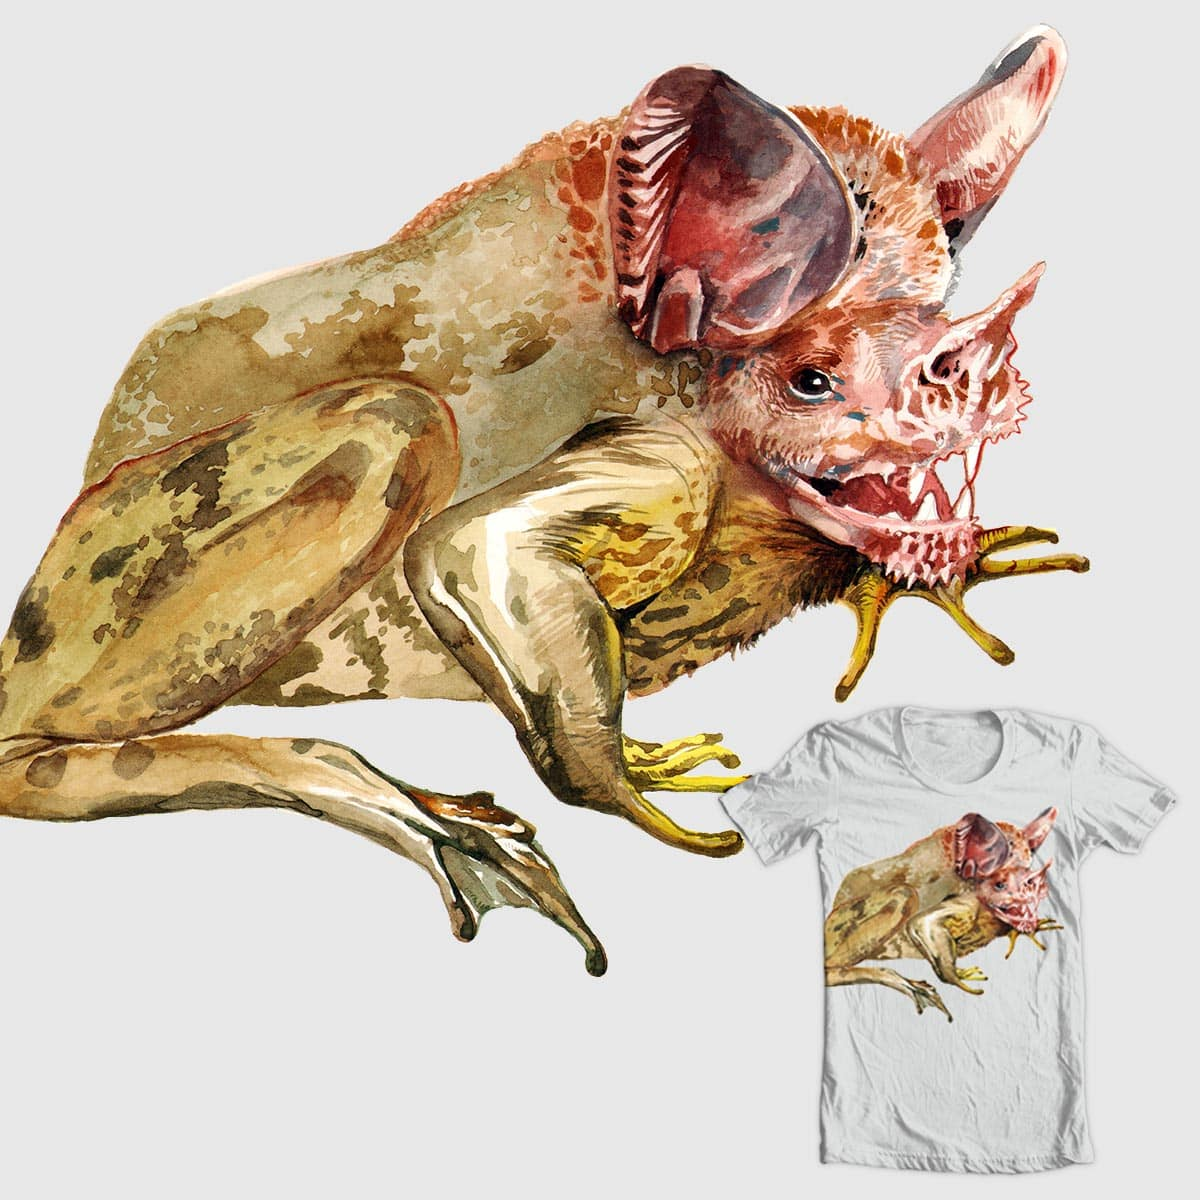 Toad Bat Chimera by Meowlynn and JLawDev on Threadless